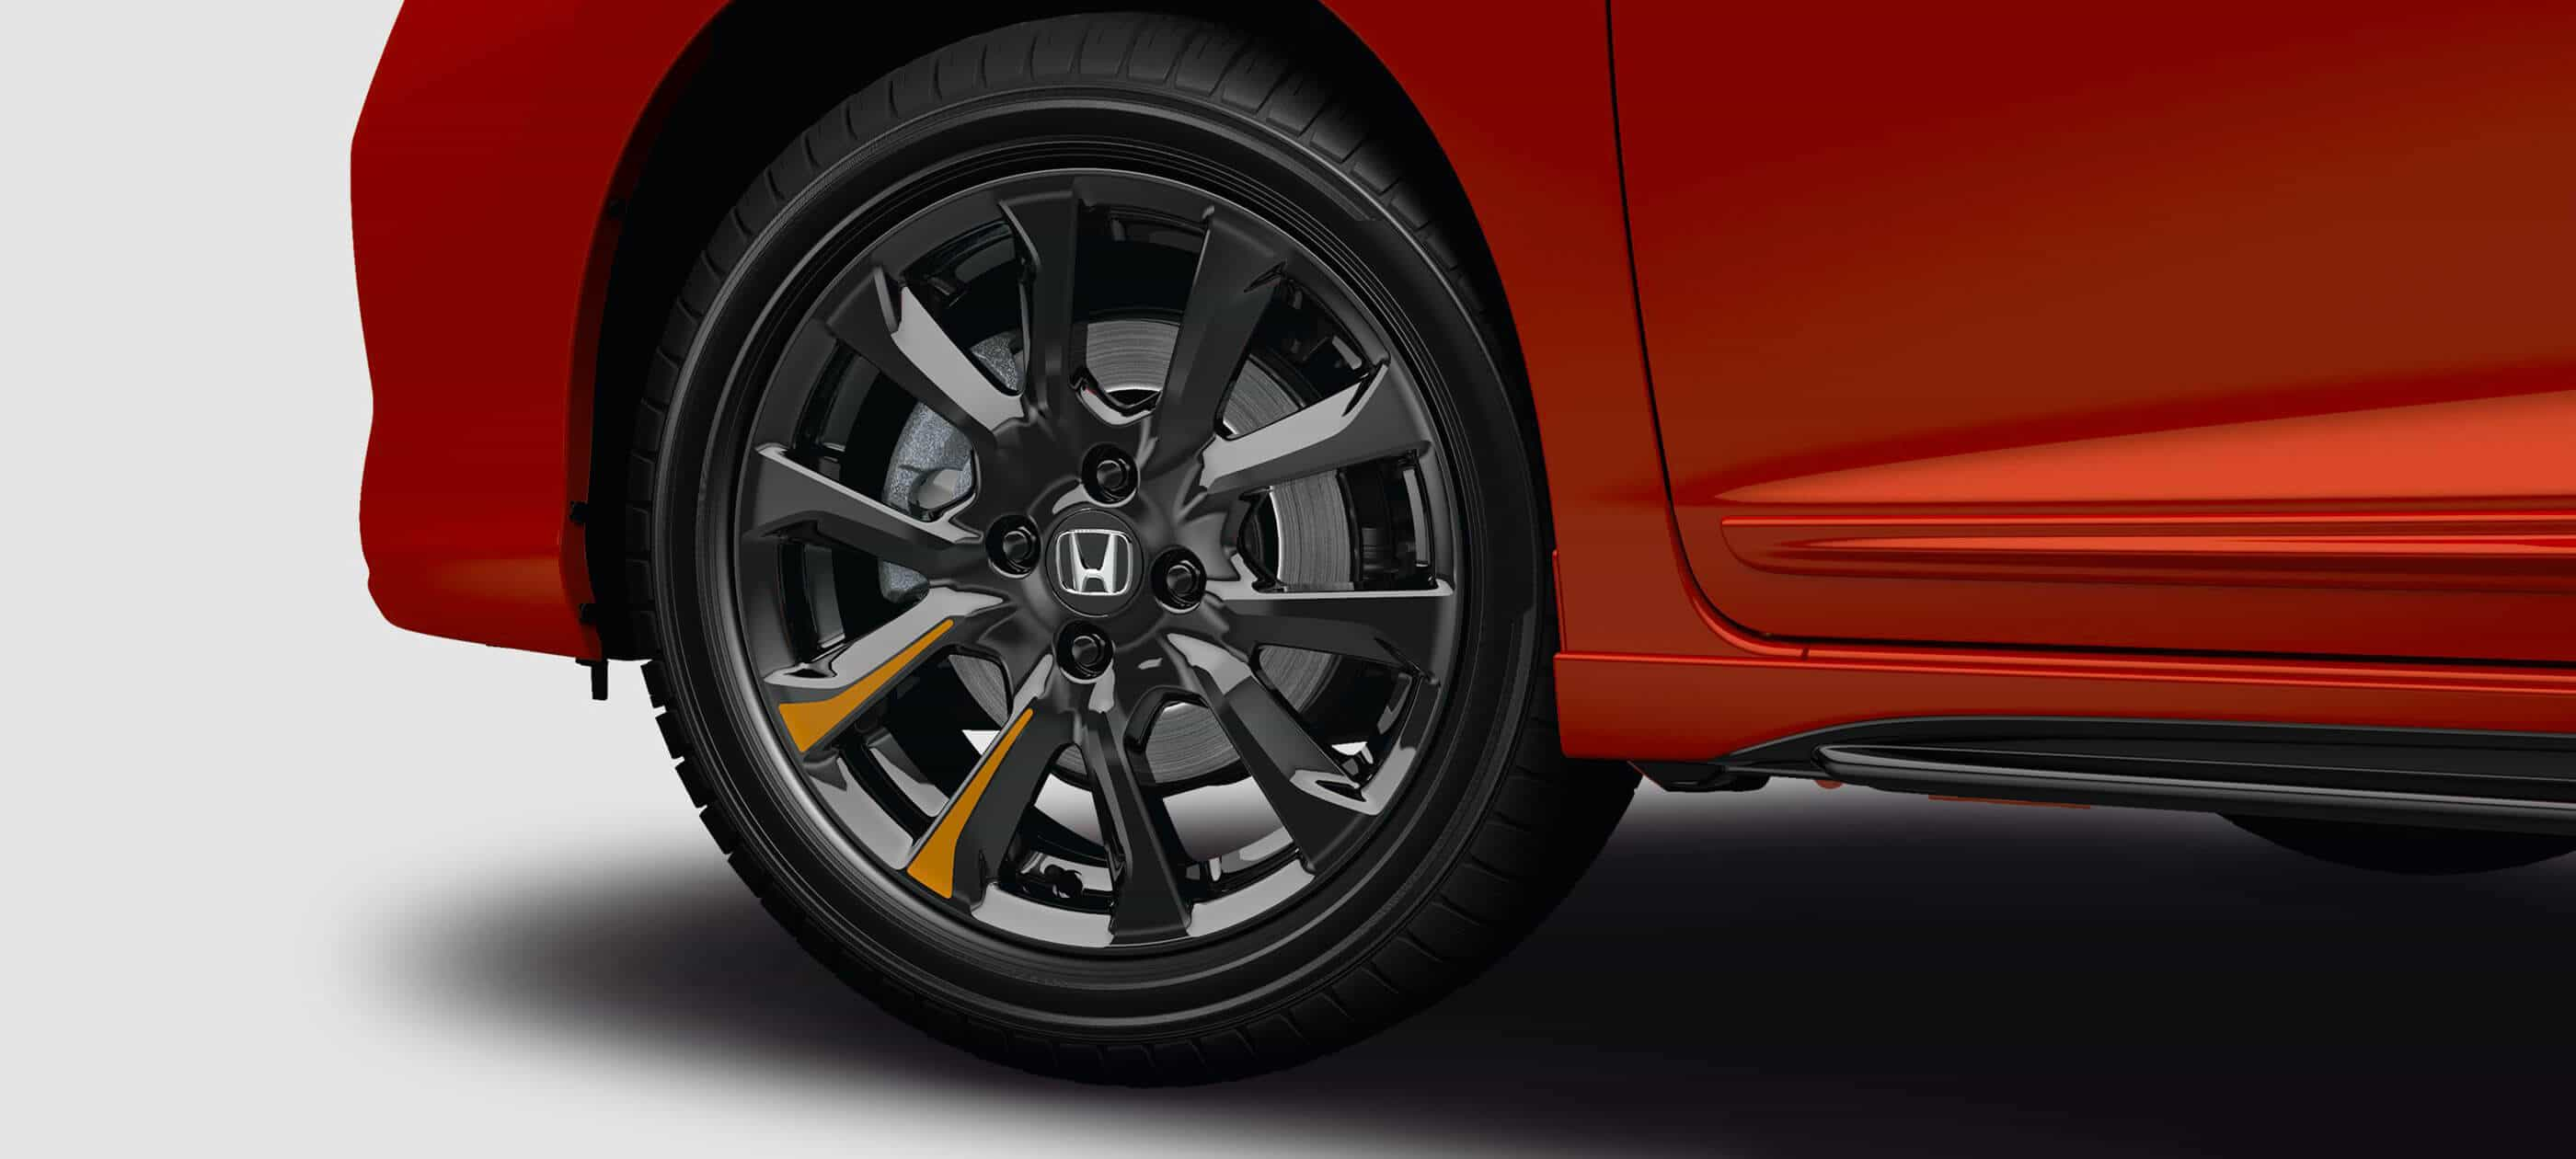 16-Inch Black Alloy Wheels